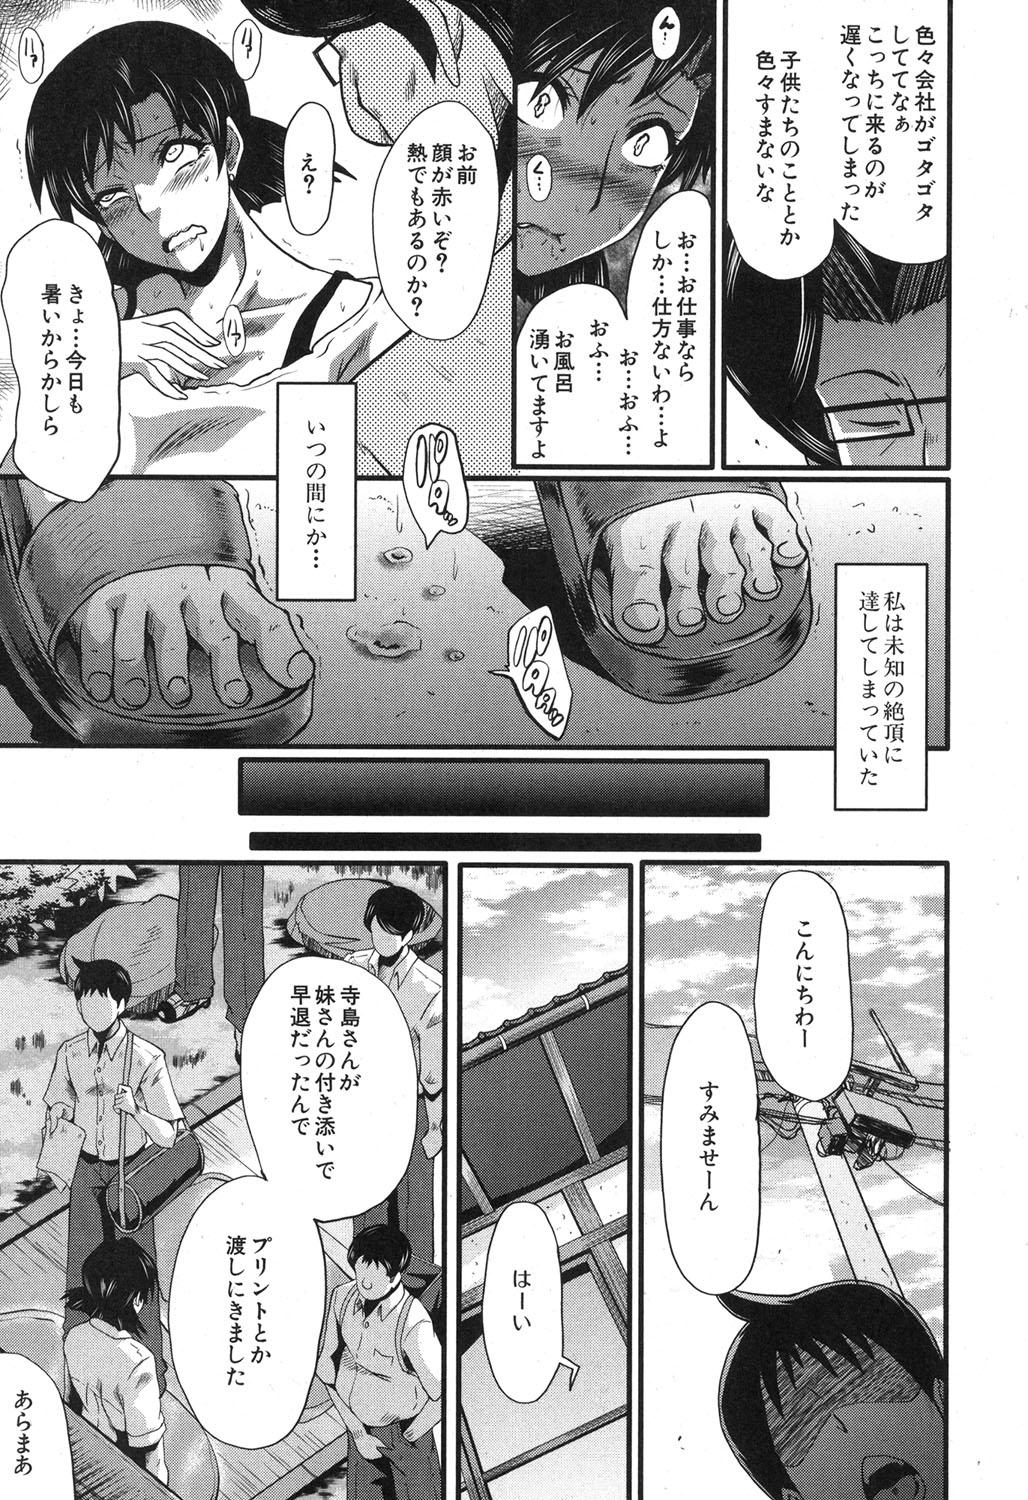 BUSTER COMIC 2015-11 117